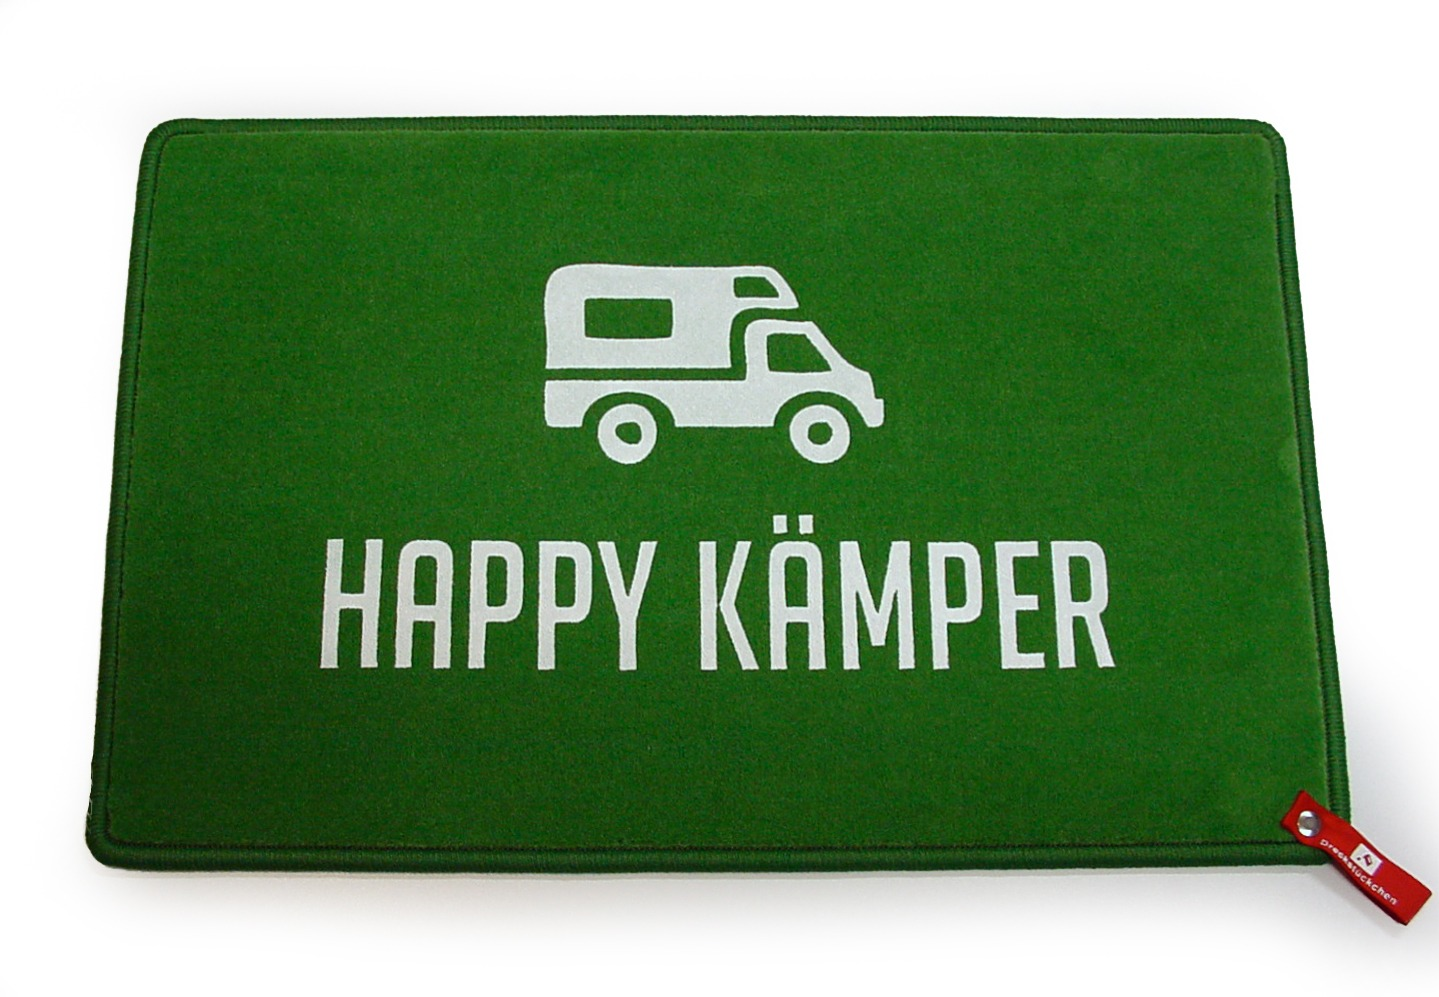 Happy Kämper